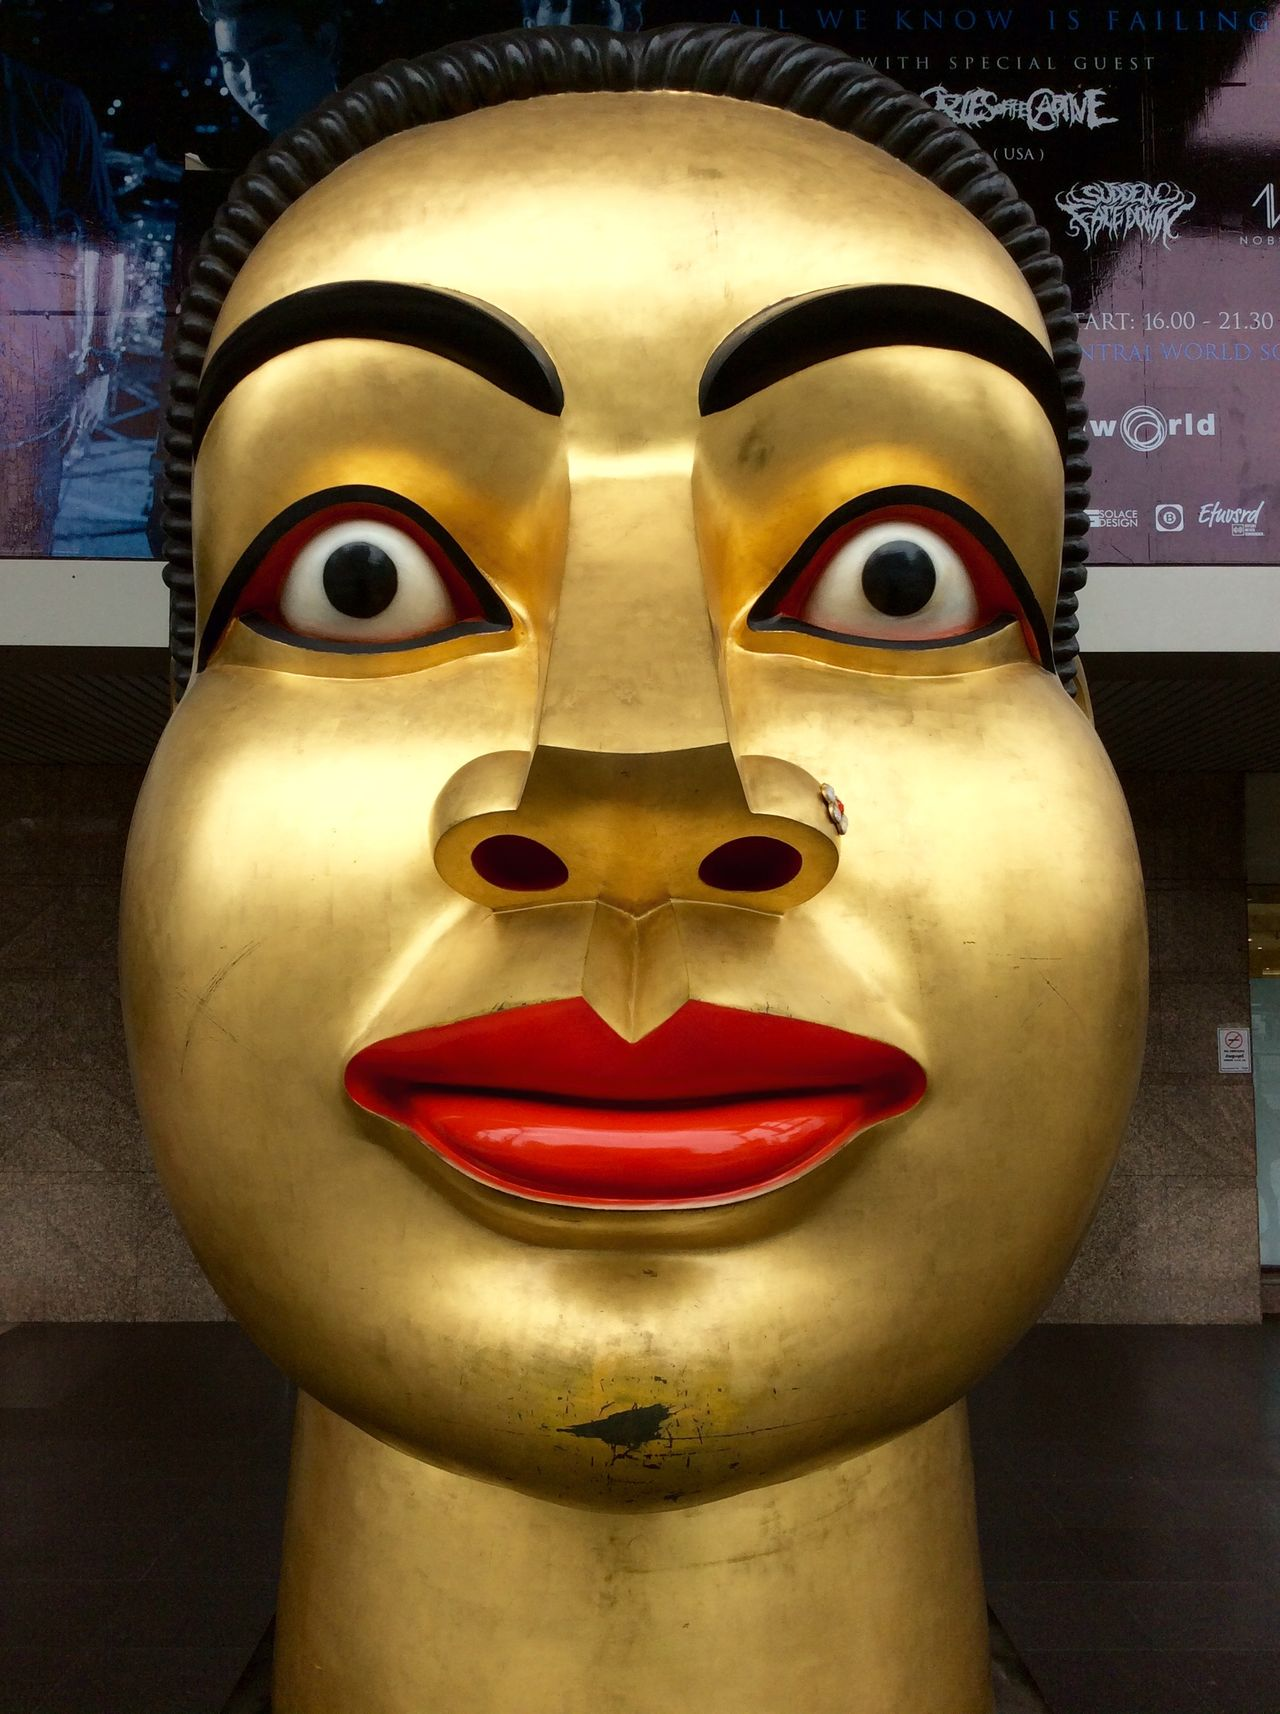 Bangkok Thailand. Large Golden Carved Head clean lines Modern Architecture Reflections EyeEm Thailand Thai Style big eyes